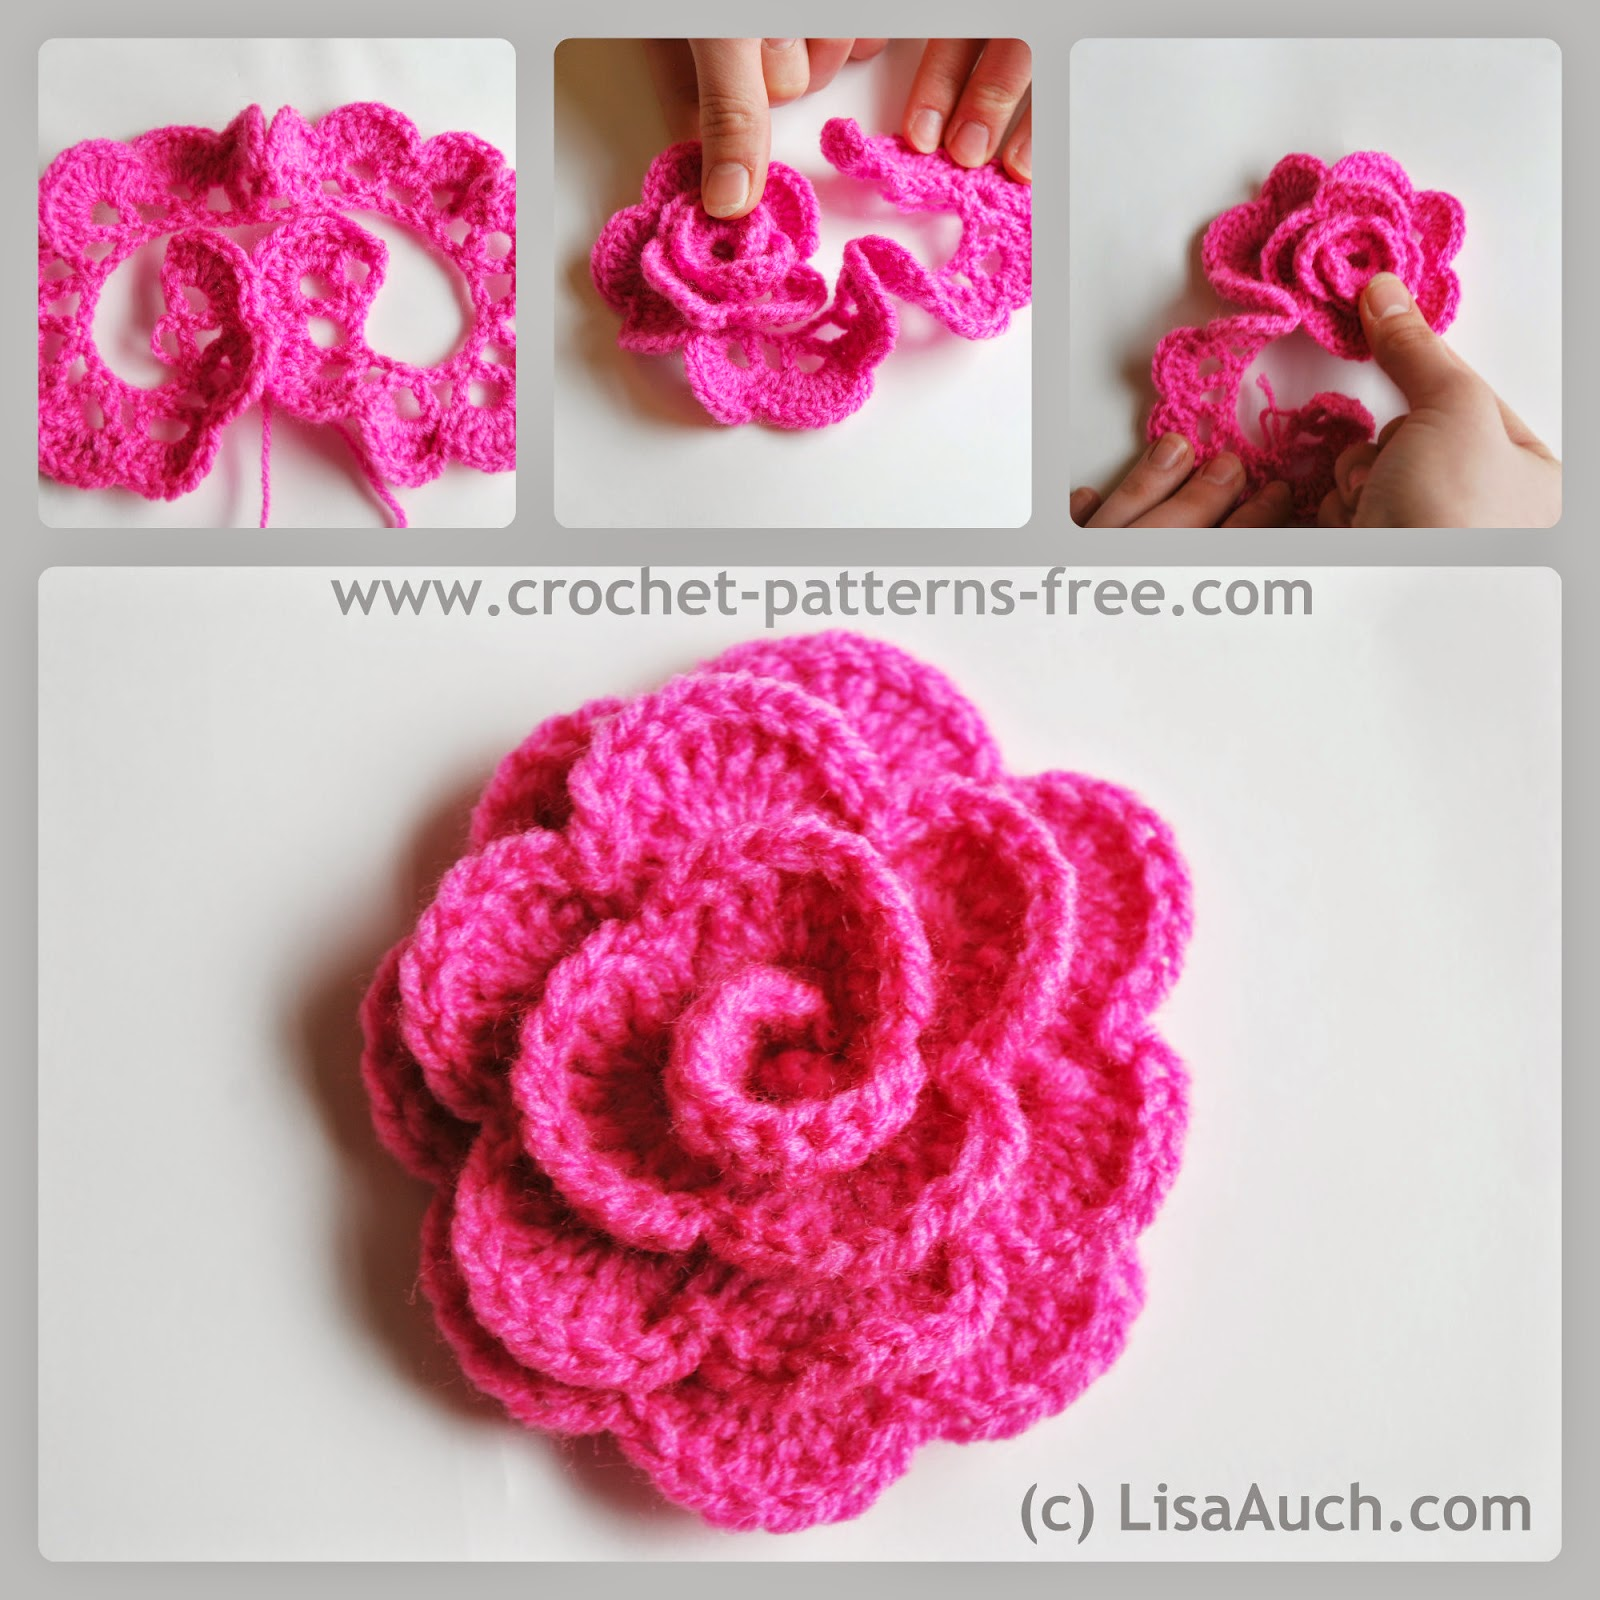 Flowers online 2018 easy crochet flowers youtube flowers online easy crochet flowers youtube these flowers are very beautiful here we offer a collection of beautiful cute charming funny and unique flower images and izmirmasajfo